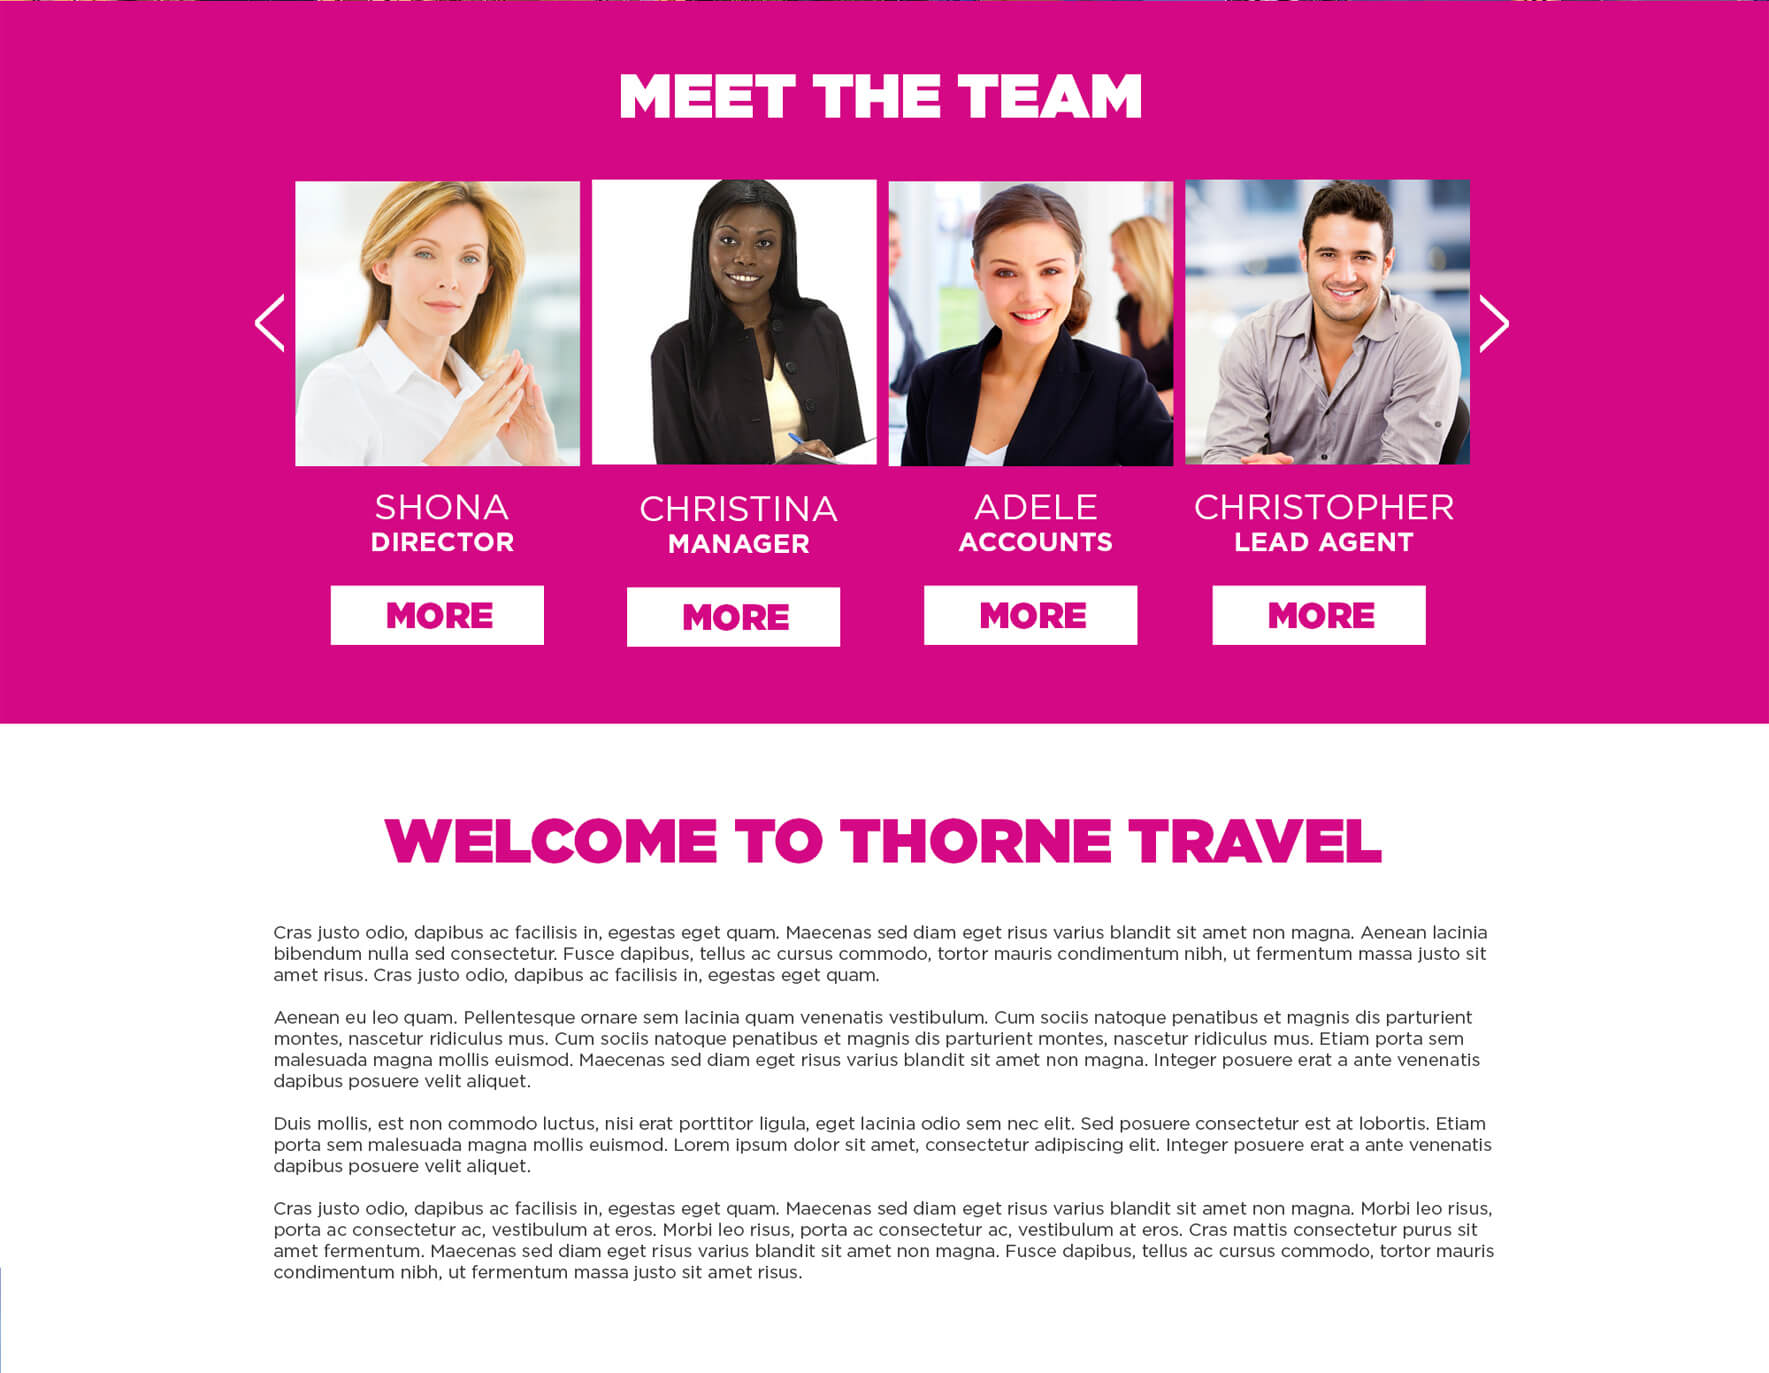 thorne travel, thorne travel website, thorne travel web design, travel website, travel web design, travel agents, travel agents website, travel agents web design, travel agency, travel agency website, travel agency web design,